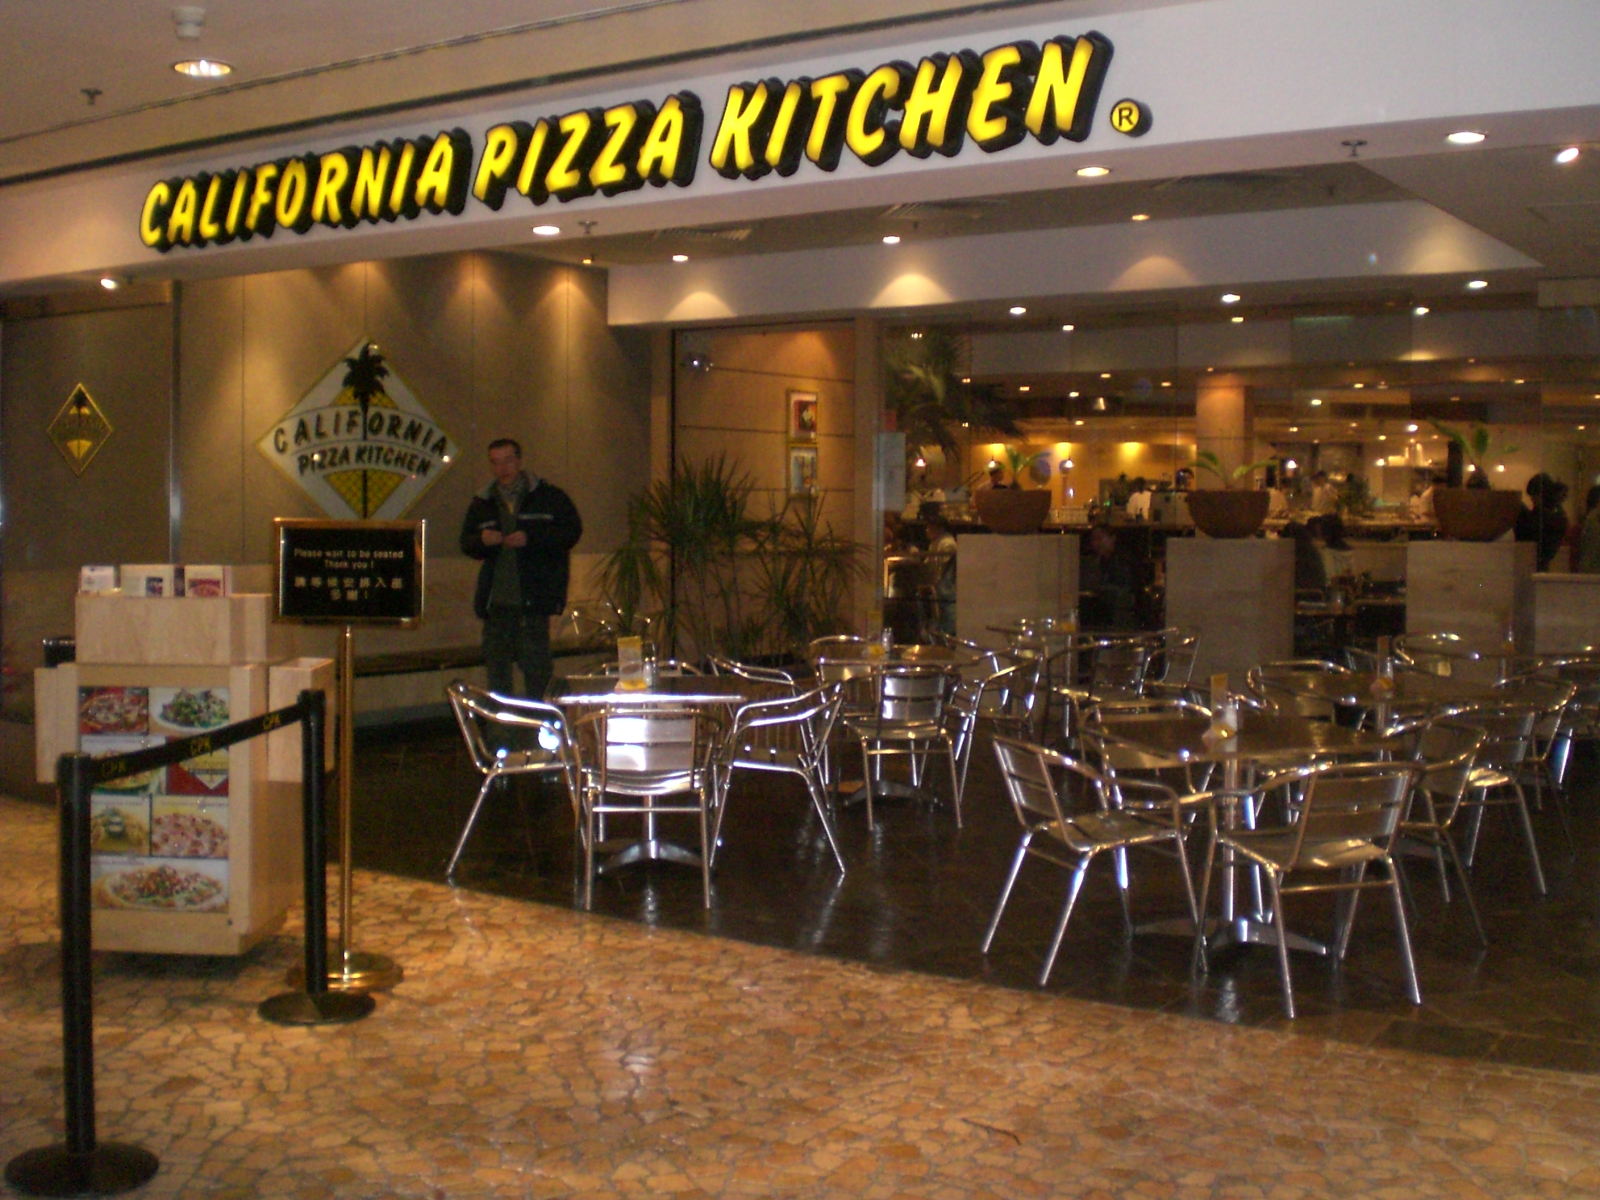 Lawsuit Against California Pizza Kitchen